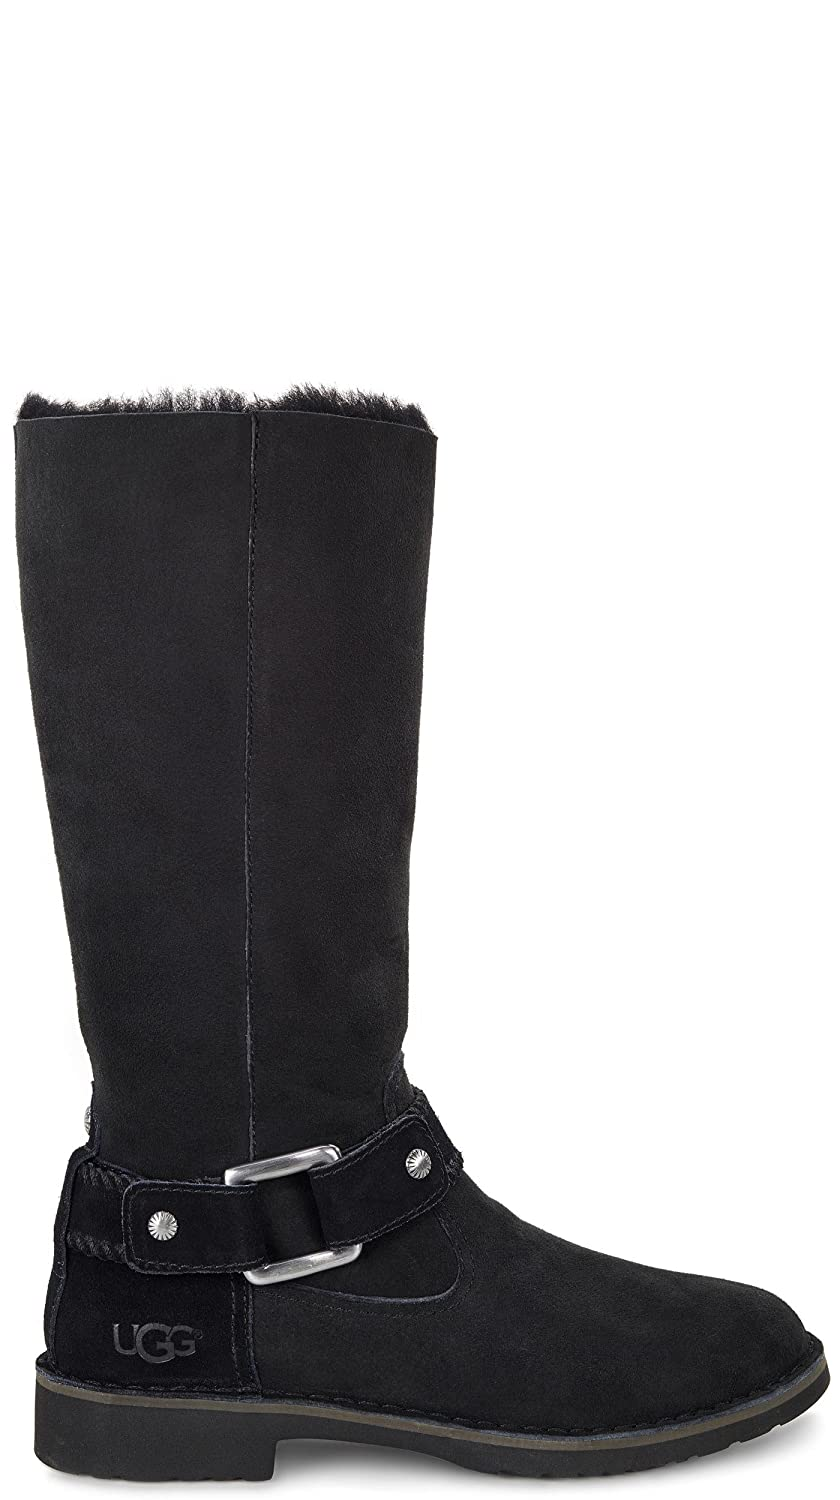 Koolaburra by UGG Sofiya Ankle Boot(Women's) -Amphora Suede Footlocker Pictures From China Cheap Price NlzVvKt